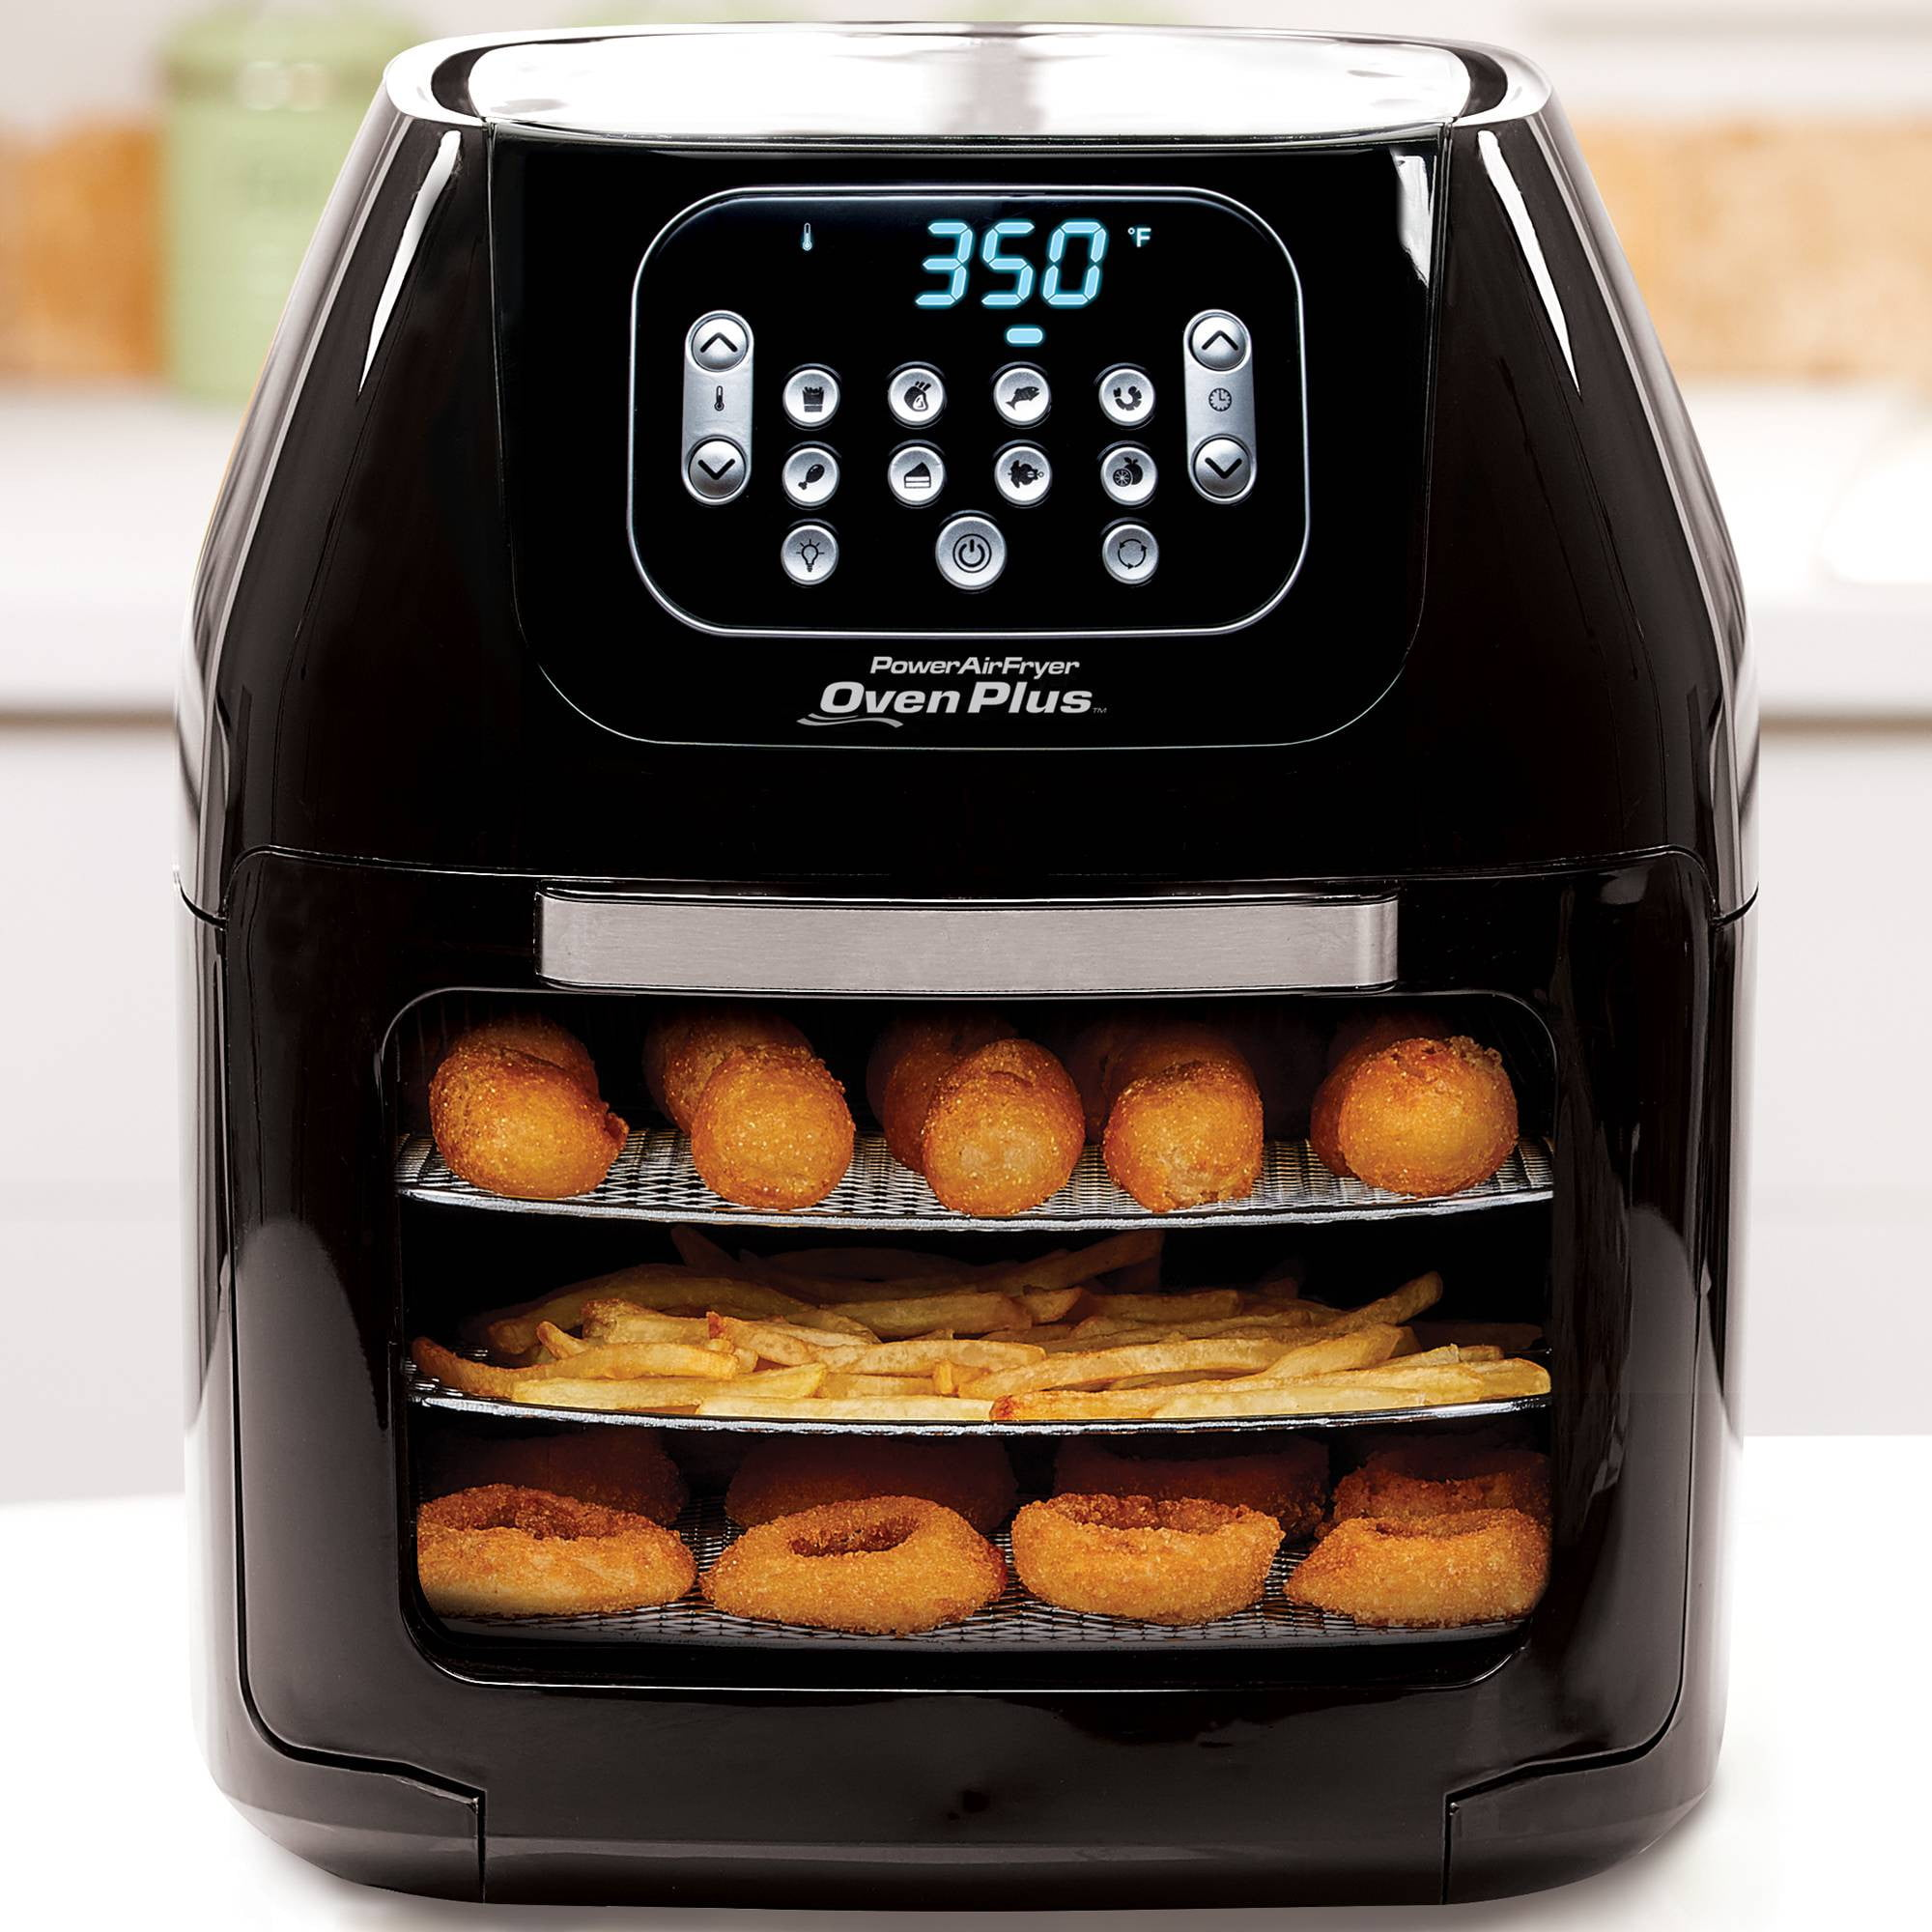 walmart drops prices on air fryers from emeril farberware and power 6 quart airfryer oven plus 4